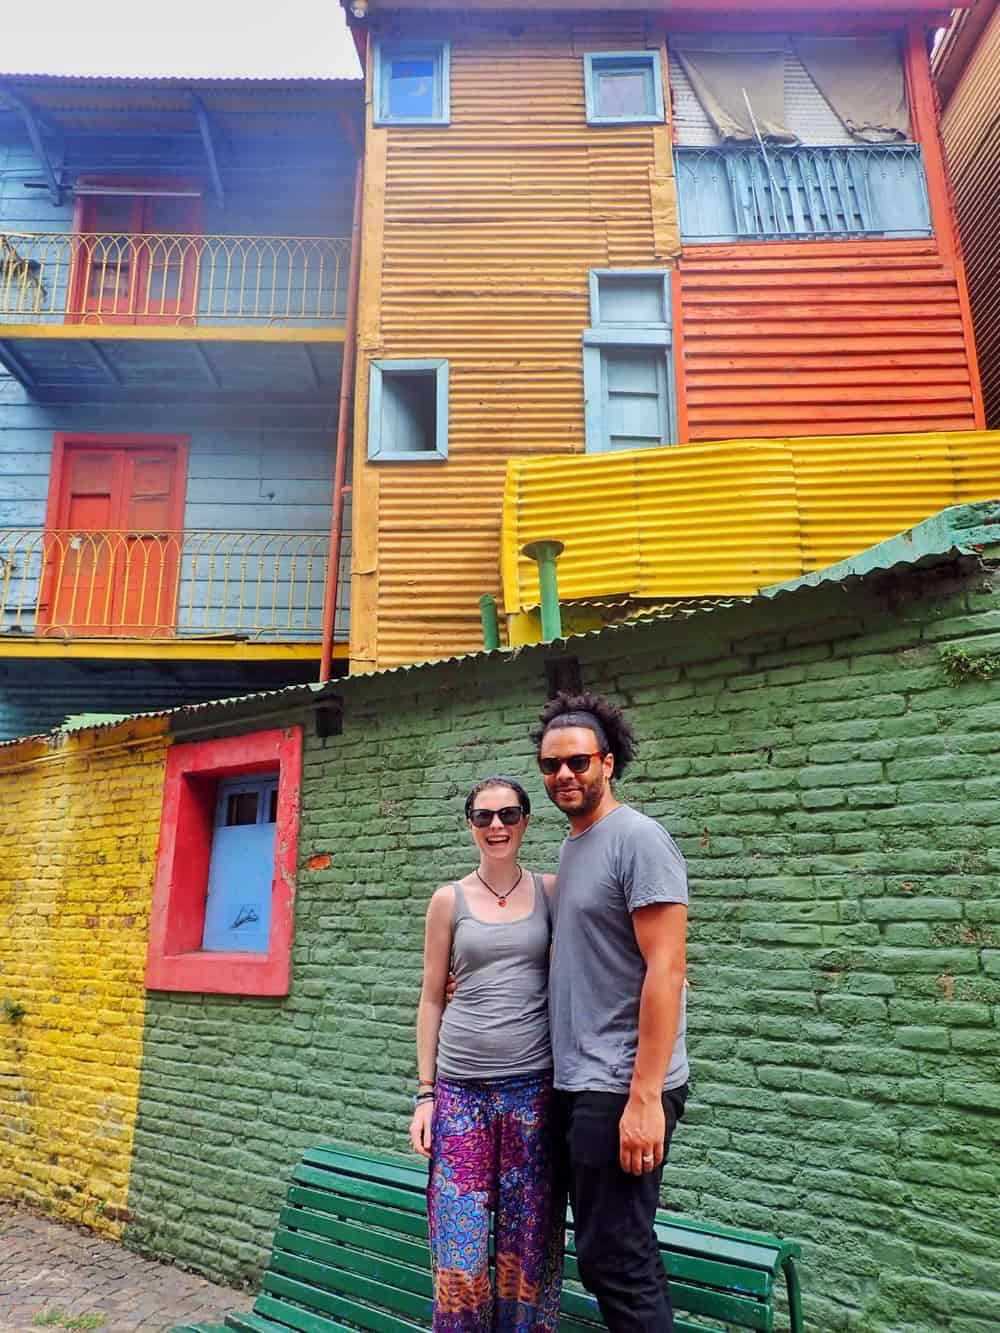 James and Sarah - colorful houses1